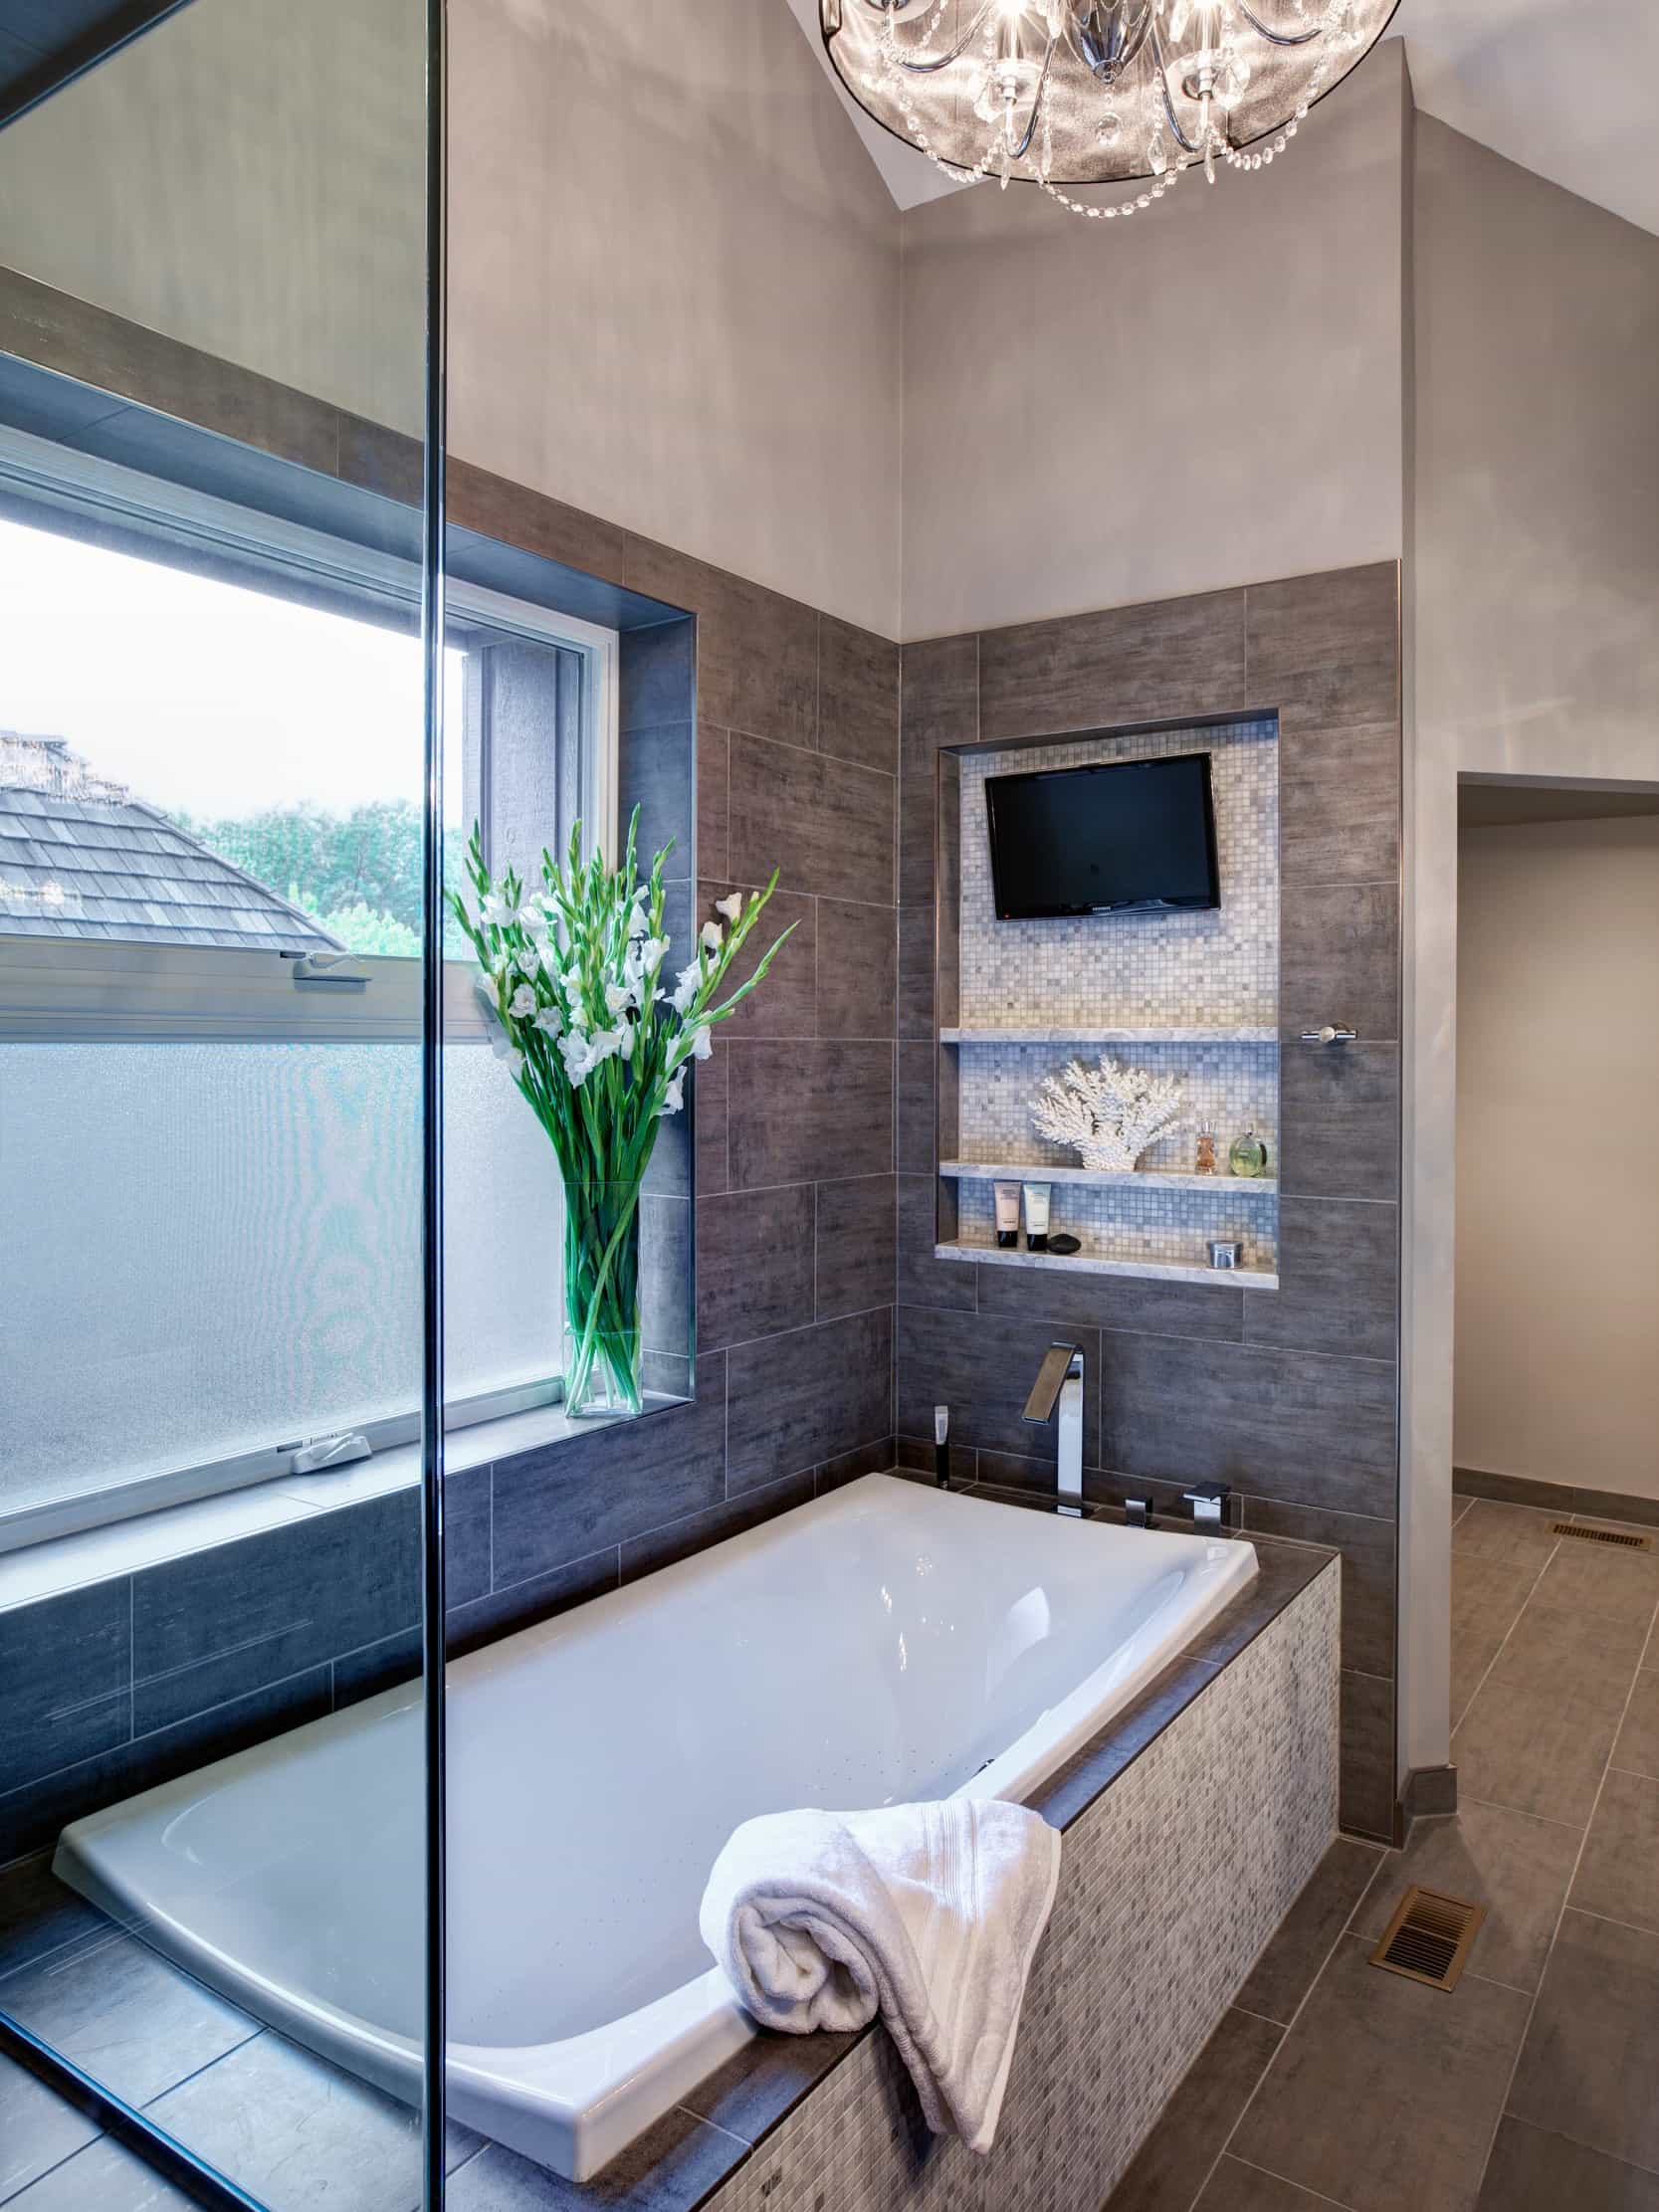 Contemporary Bathroom Interior With Soaking Tub And TV (Image 3 of 15)